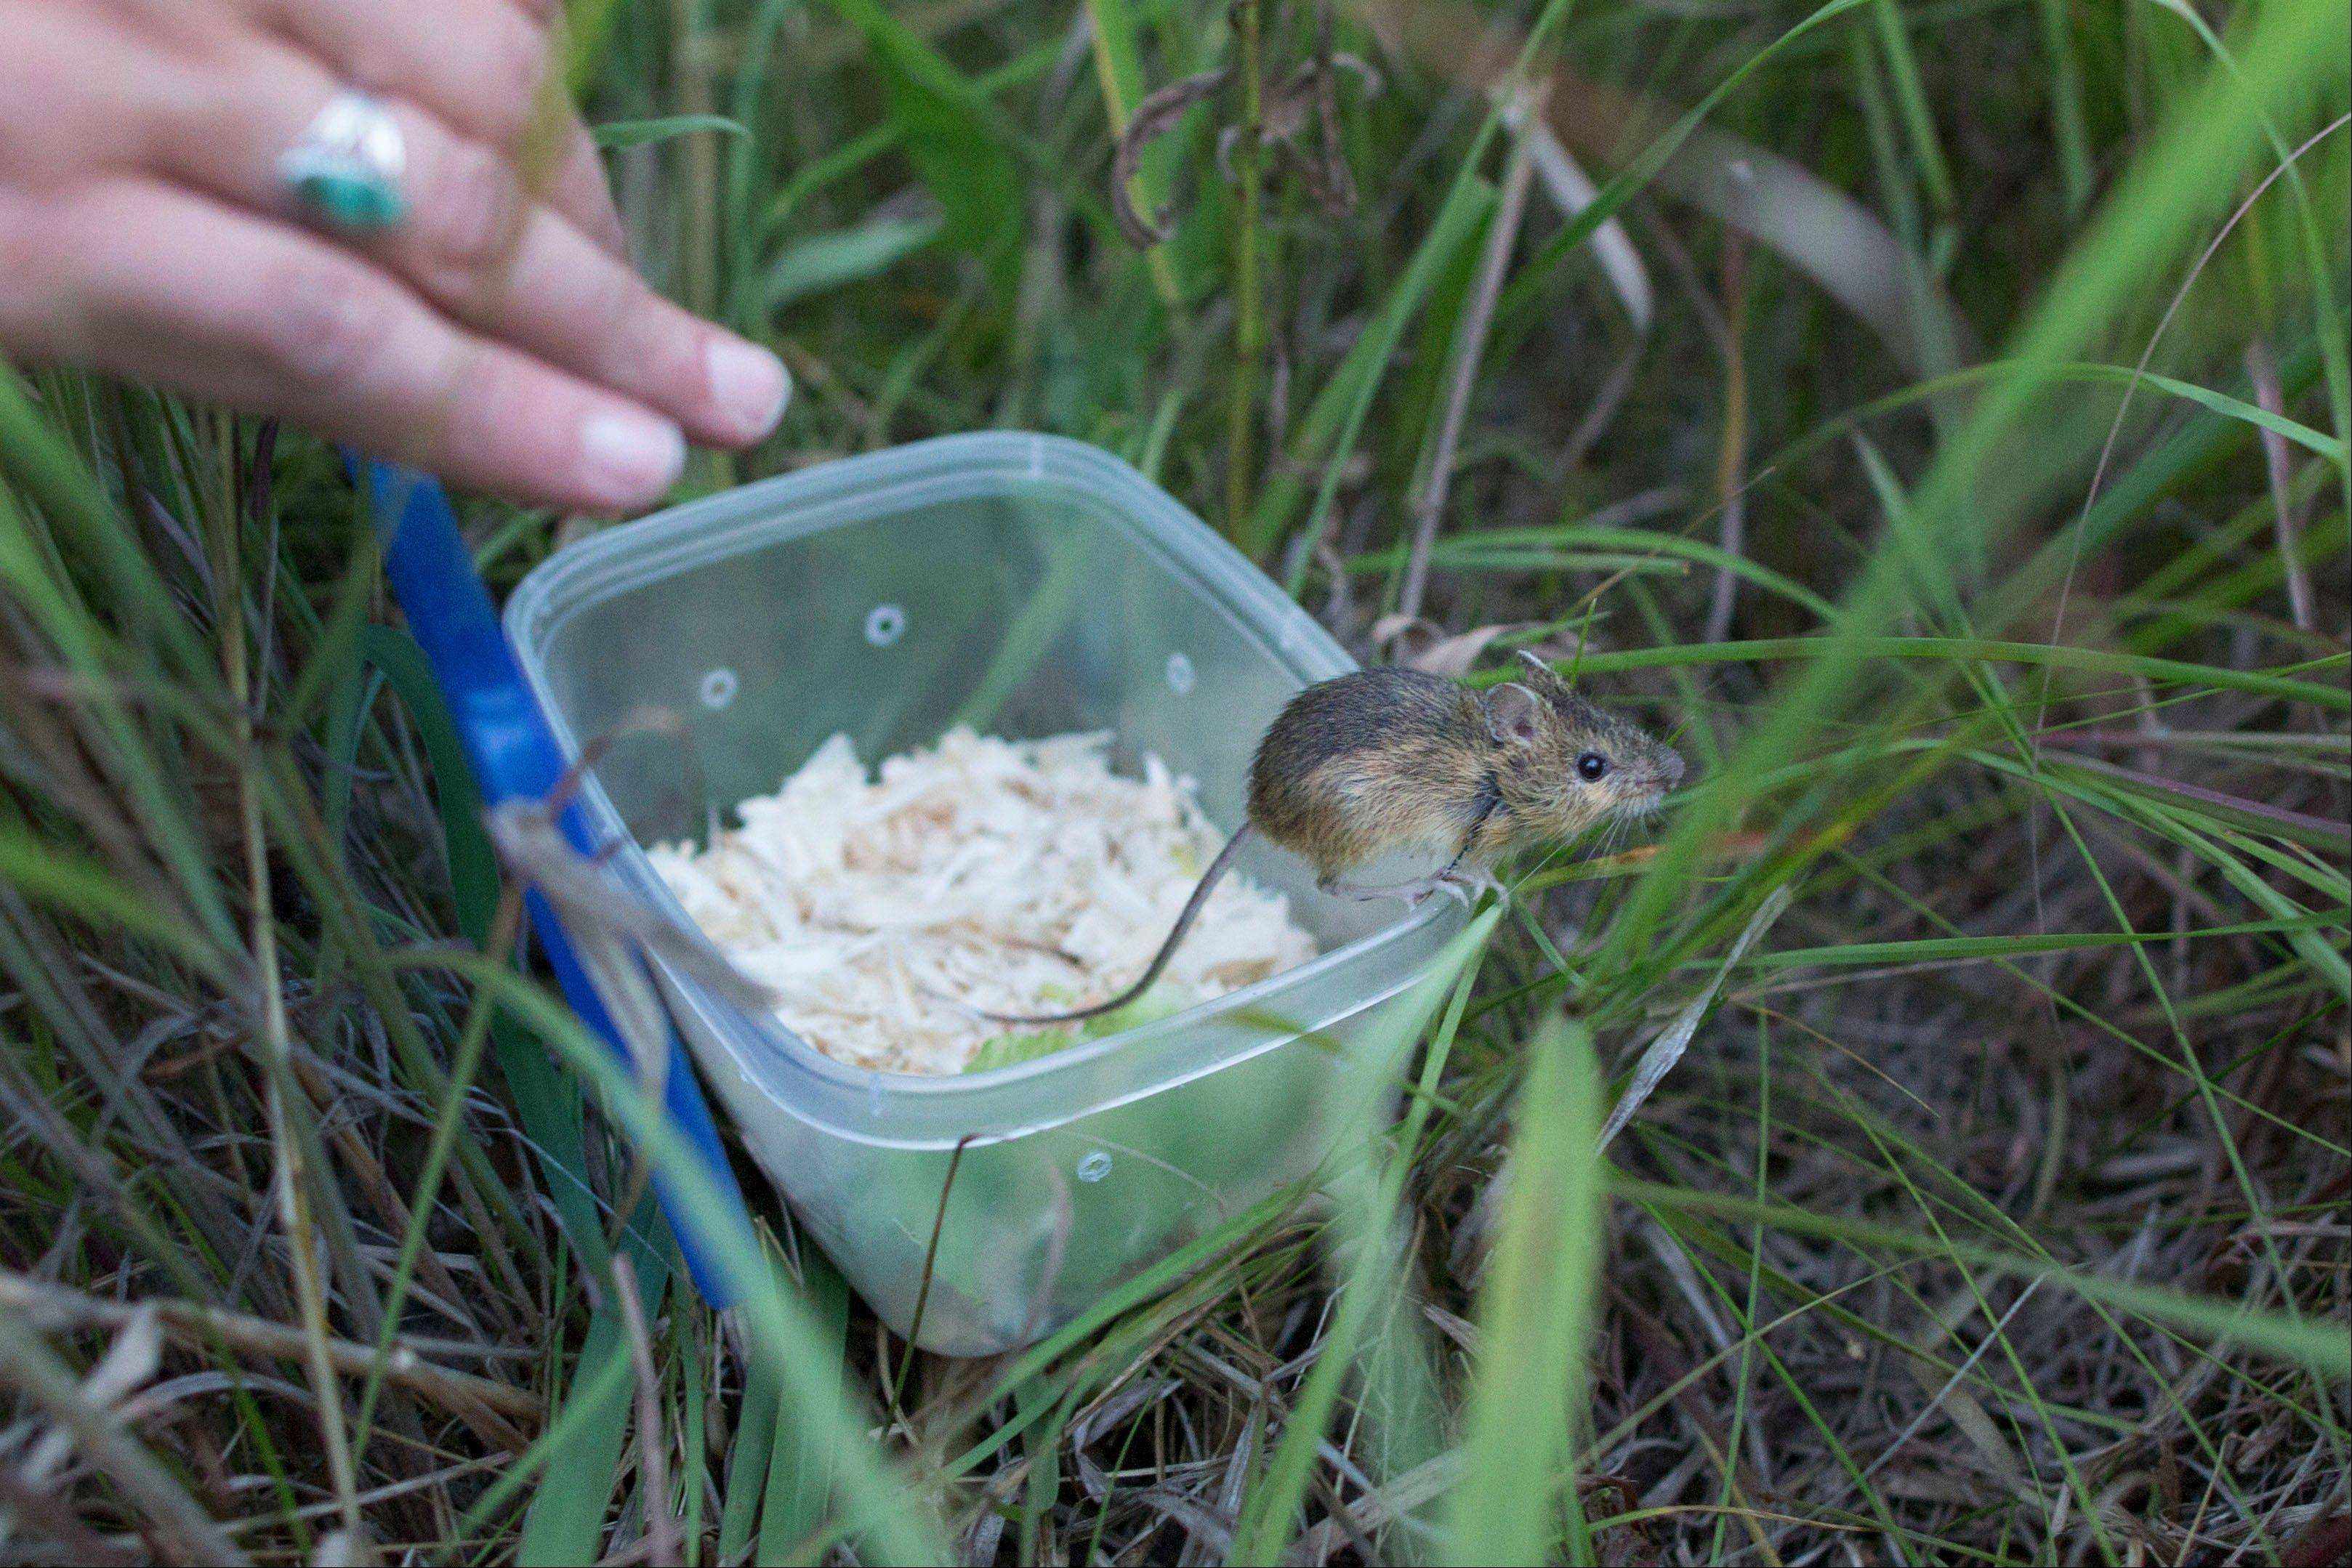 In this July 24, 2013 photograph, a meadow jumping mouse stands on the edge of a container while being released at Rollins Savanna in Grayslake, Ill. Scientists at Lincoln Park Zoo are raising meadow jumping mice and and releasing them into the wild in an effort to help restore dwindling Midwestern prairies.